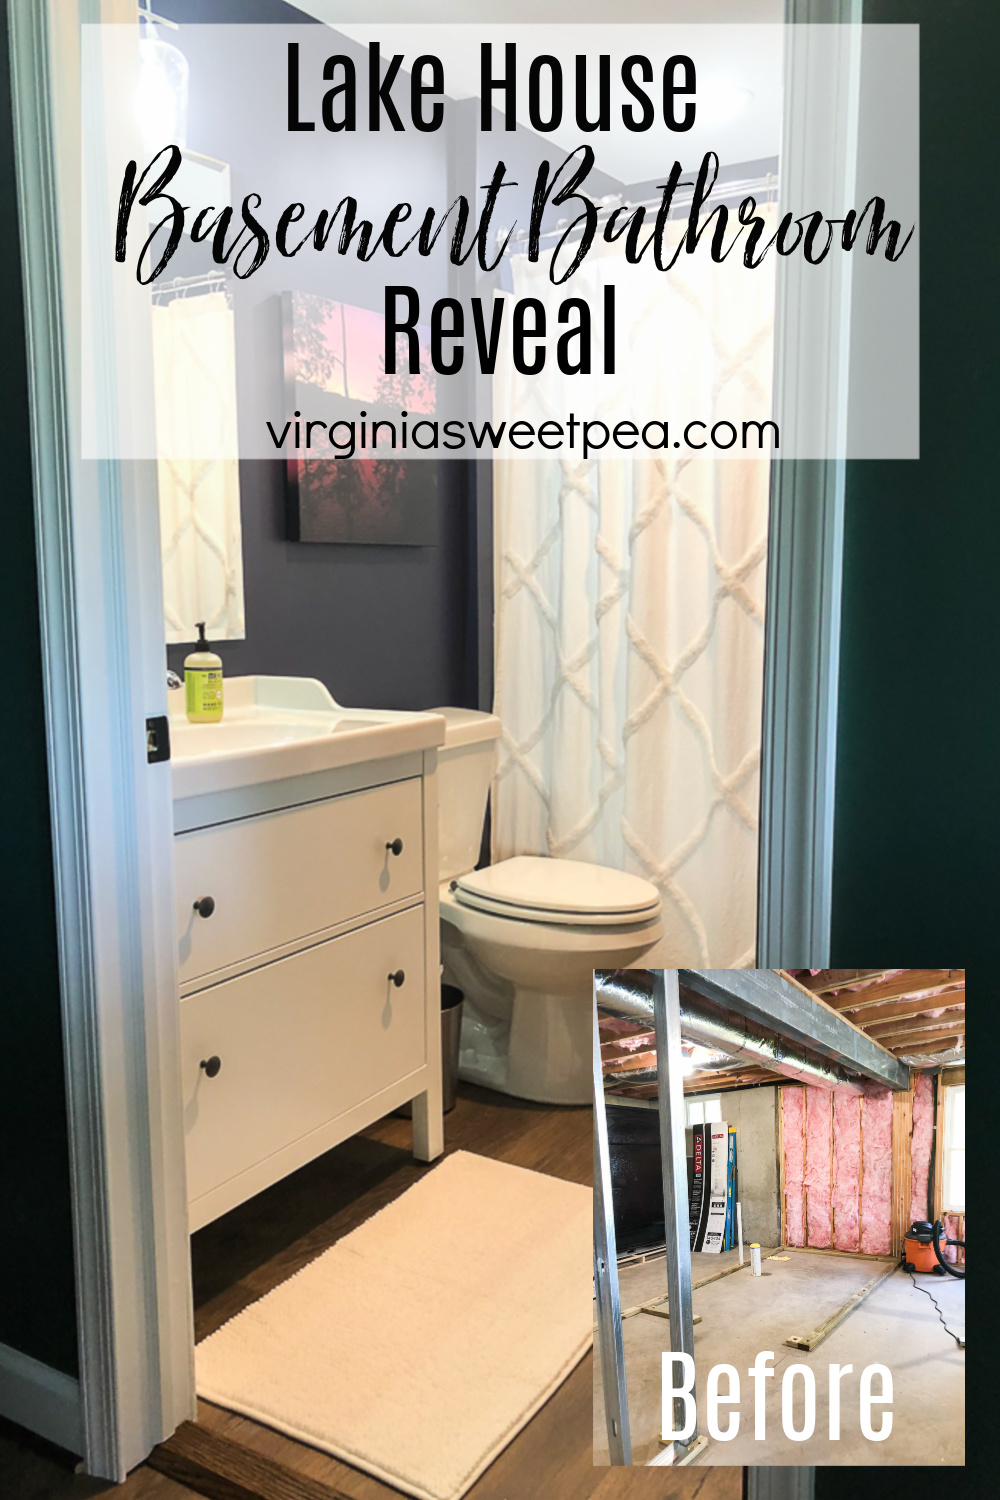 Lake House Basement Bathroom Reveal - A basement bathroom is added to an unfinished bathroom. See the process and the end result. #lakehouse #lakehousebathroom #basementbathroom #addabathroomtoabasement via @spaula